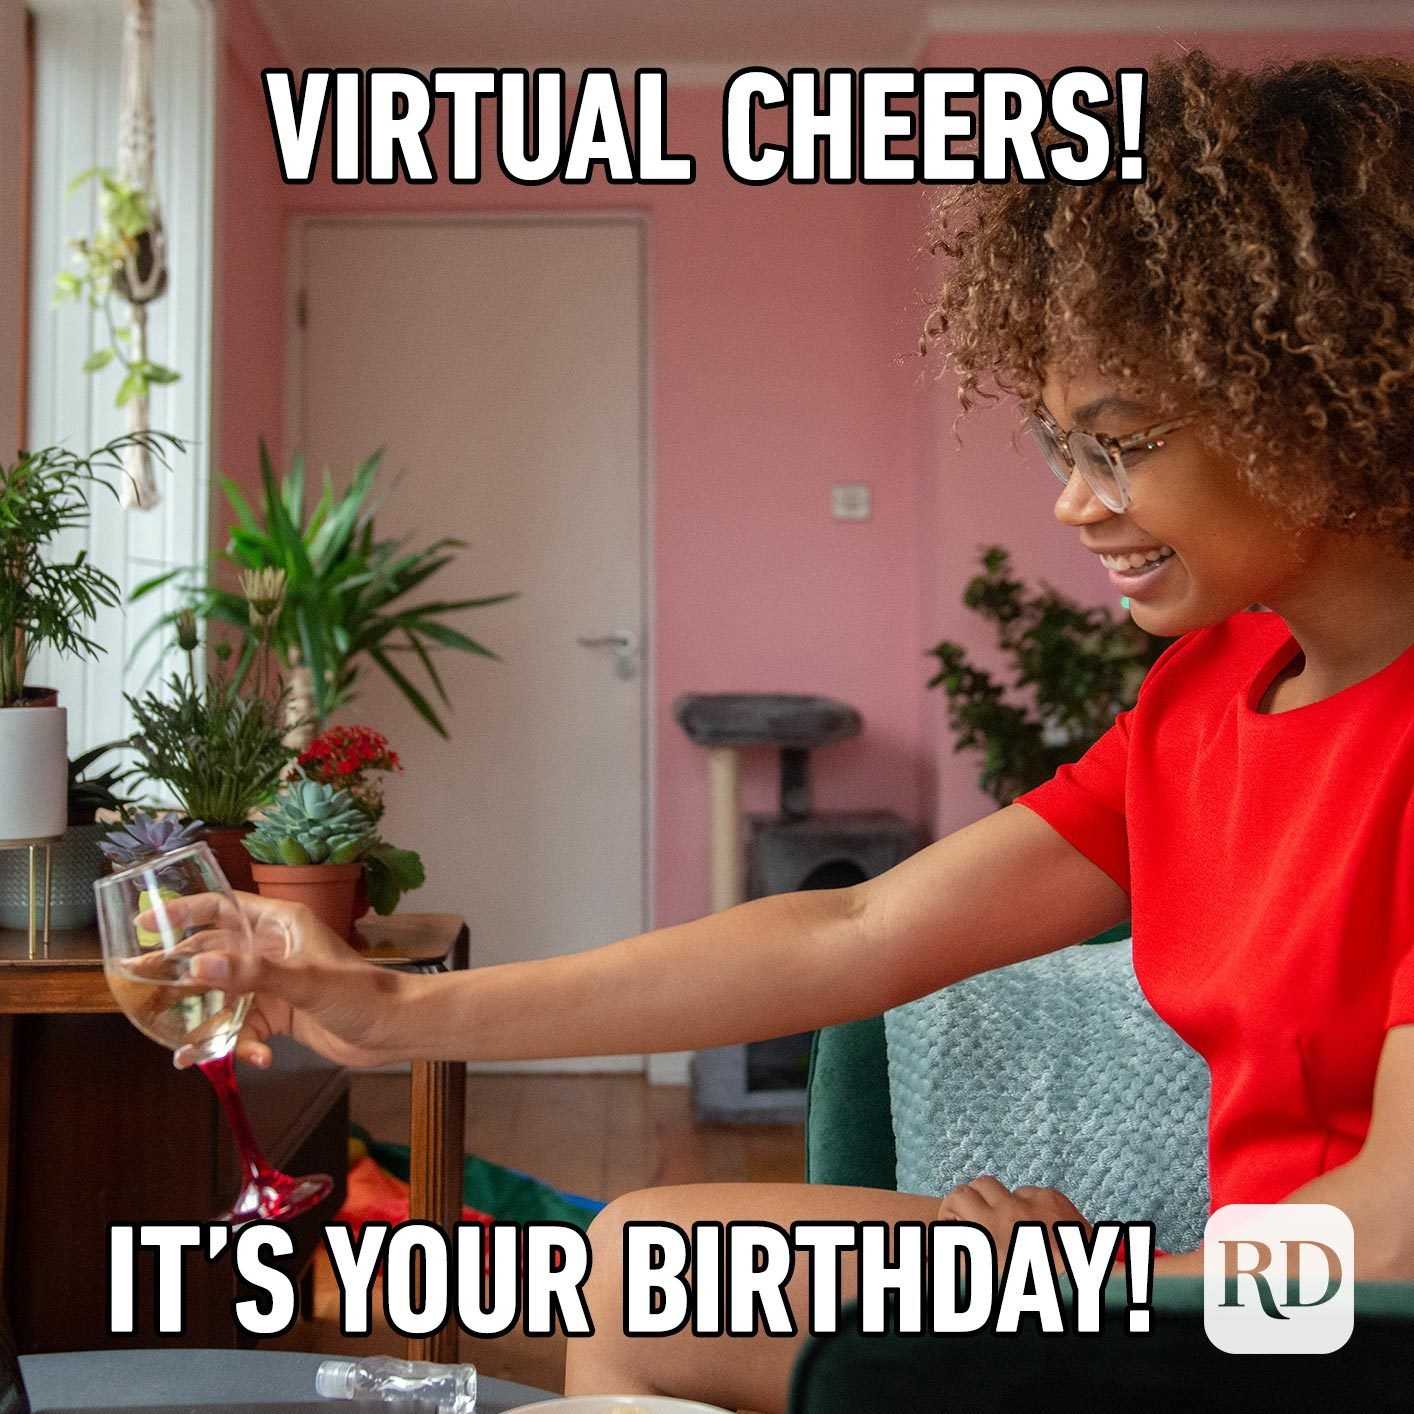 Virtual cheers! It's your birthday!